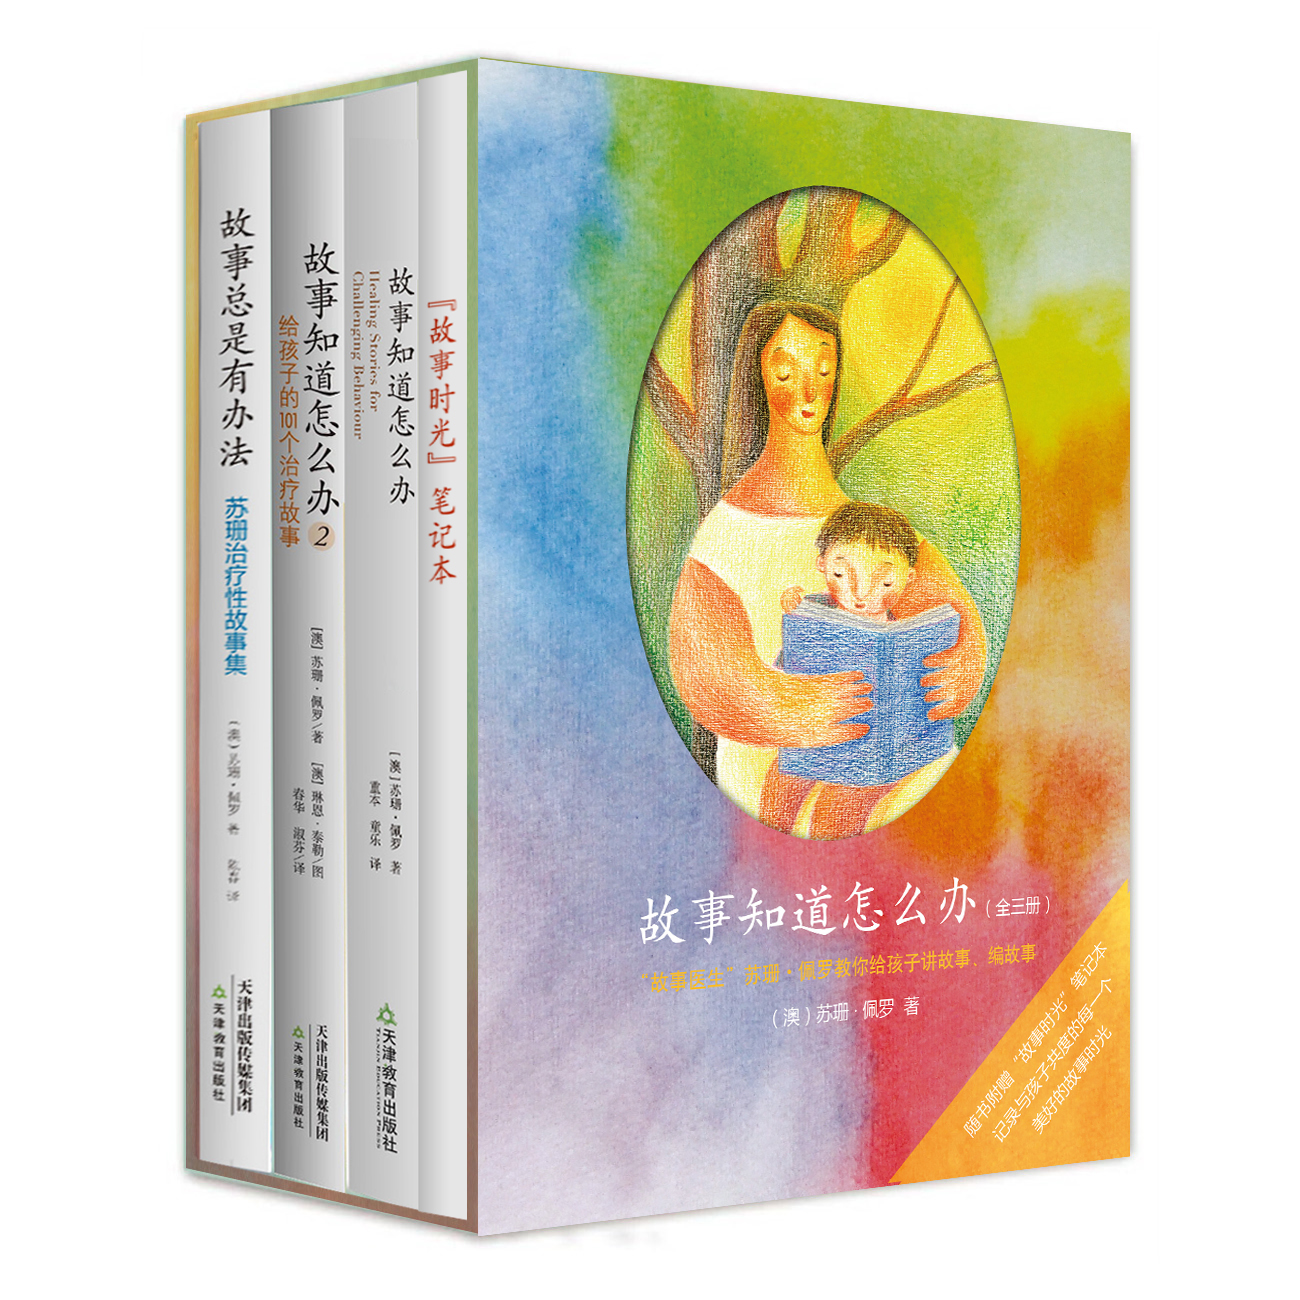 Boxed Set - Stories Know the Way (Books 1,2,3) - 2015 - ToBeBooks, Beijing